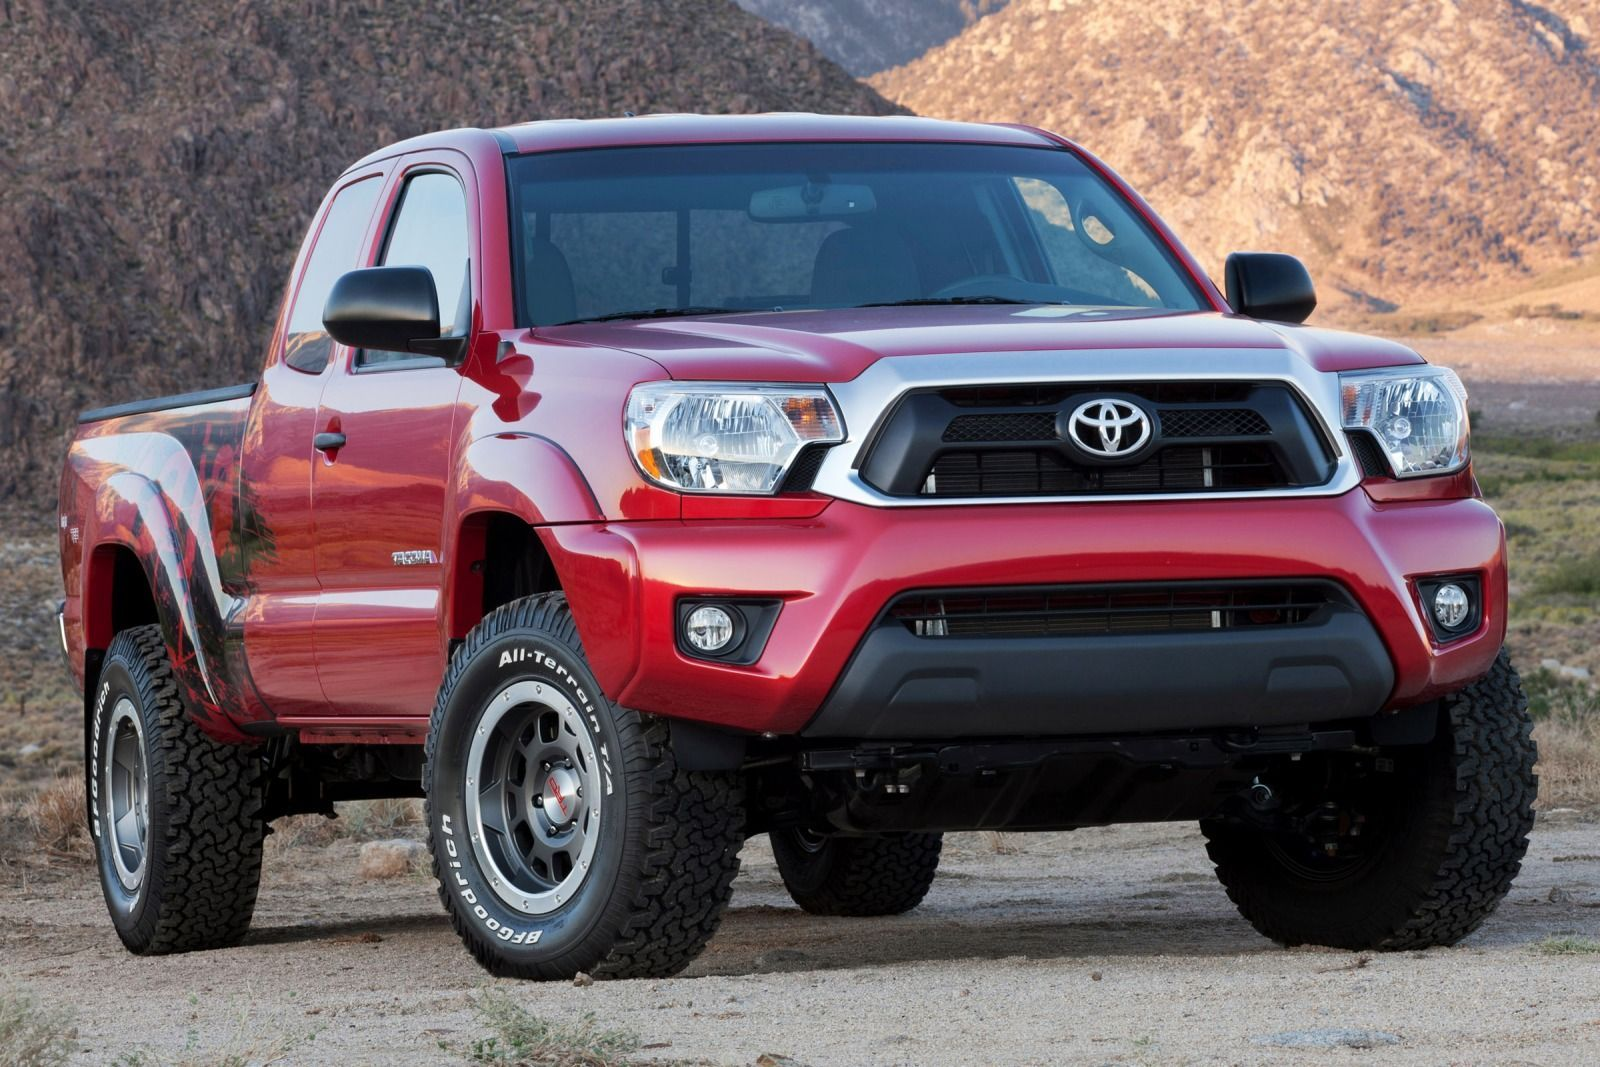 2015 Toyota Redesign Review. With strong engines